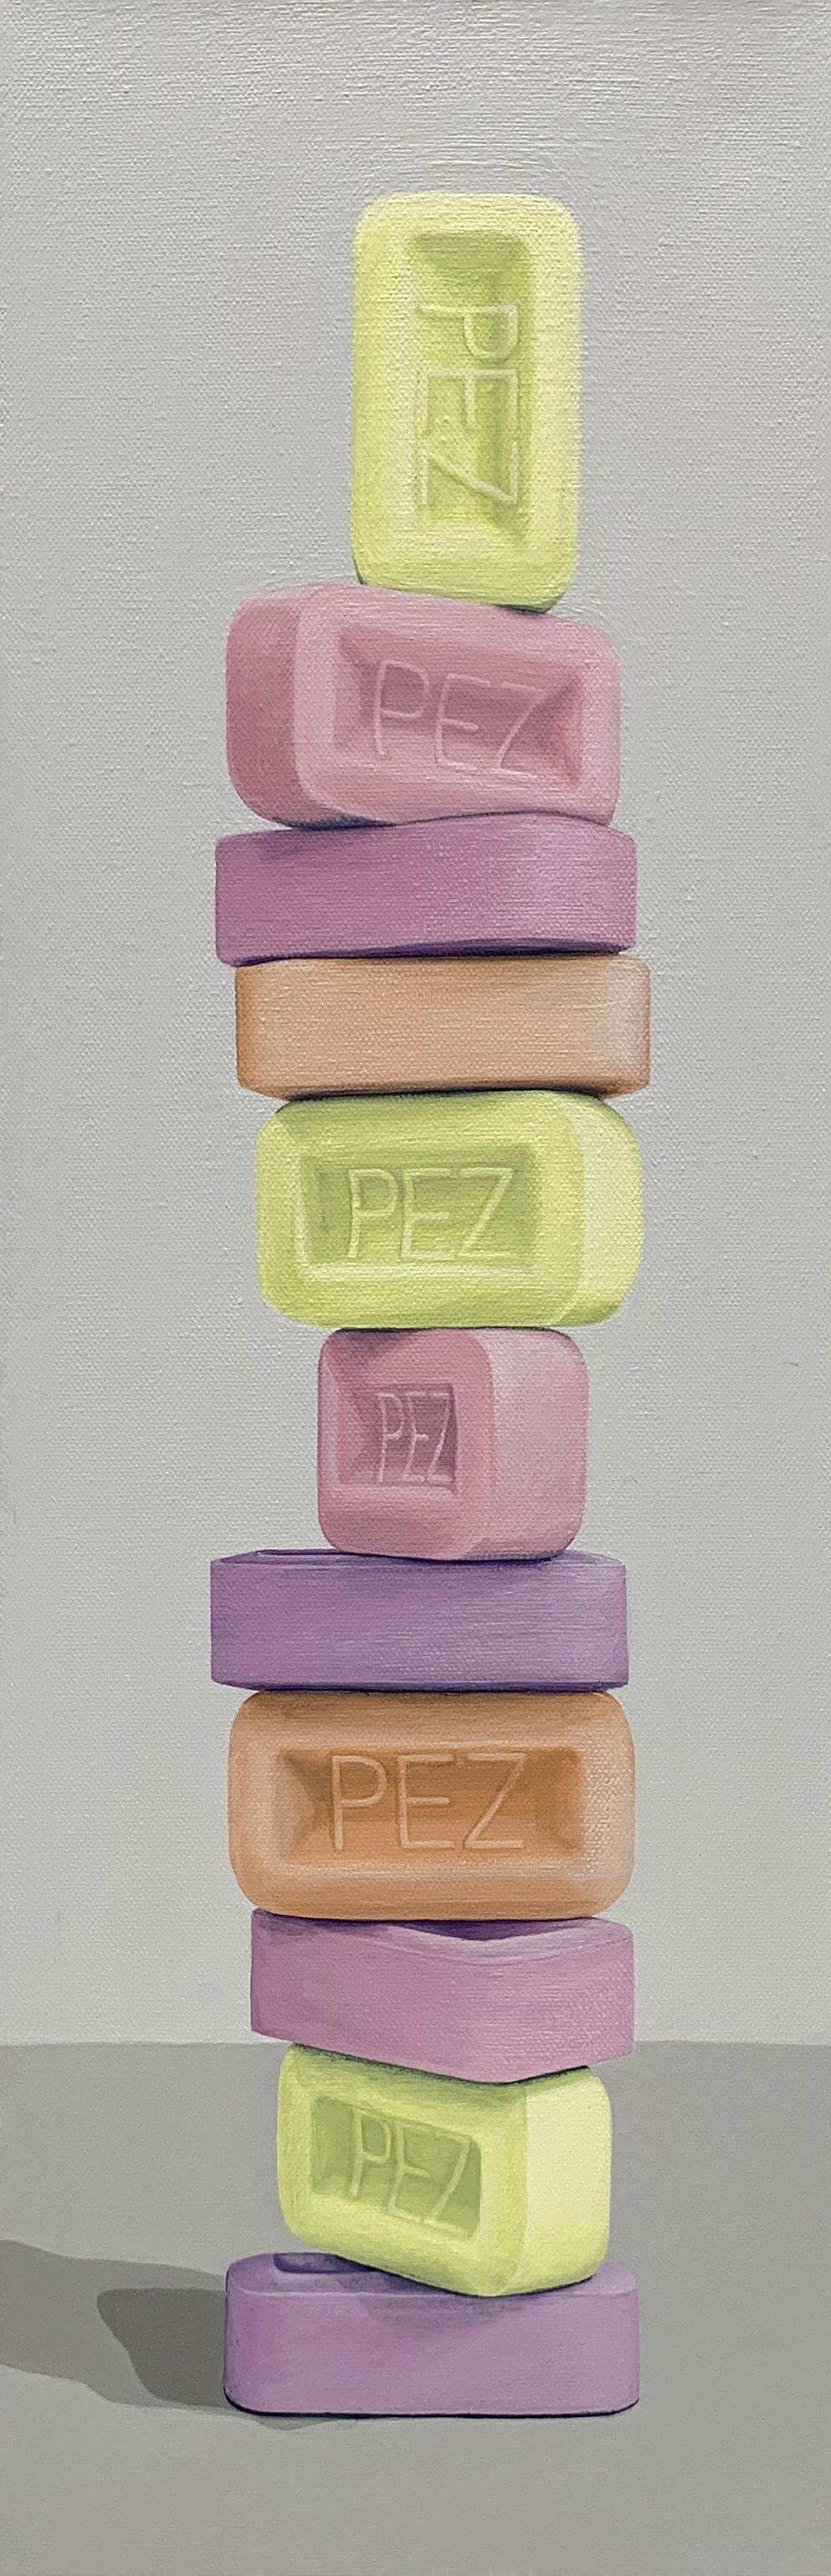 "Totem: Eleven [PEZ]  This architectural stack of PEZ blocks is a towering testament to the awesome allure of candy! Stacks of deliciousness or cultural comment?  8"" x 24"" gallery wrapped canvas  $600.00"